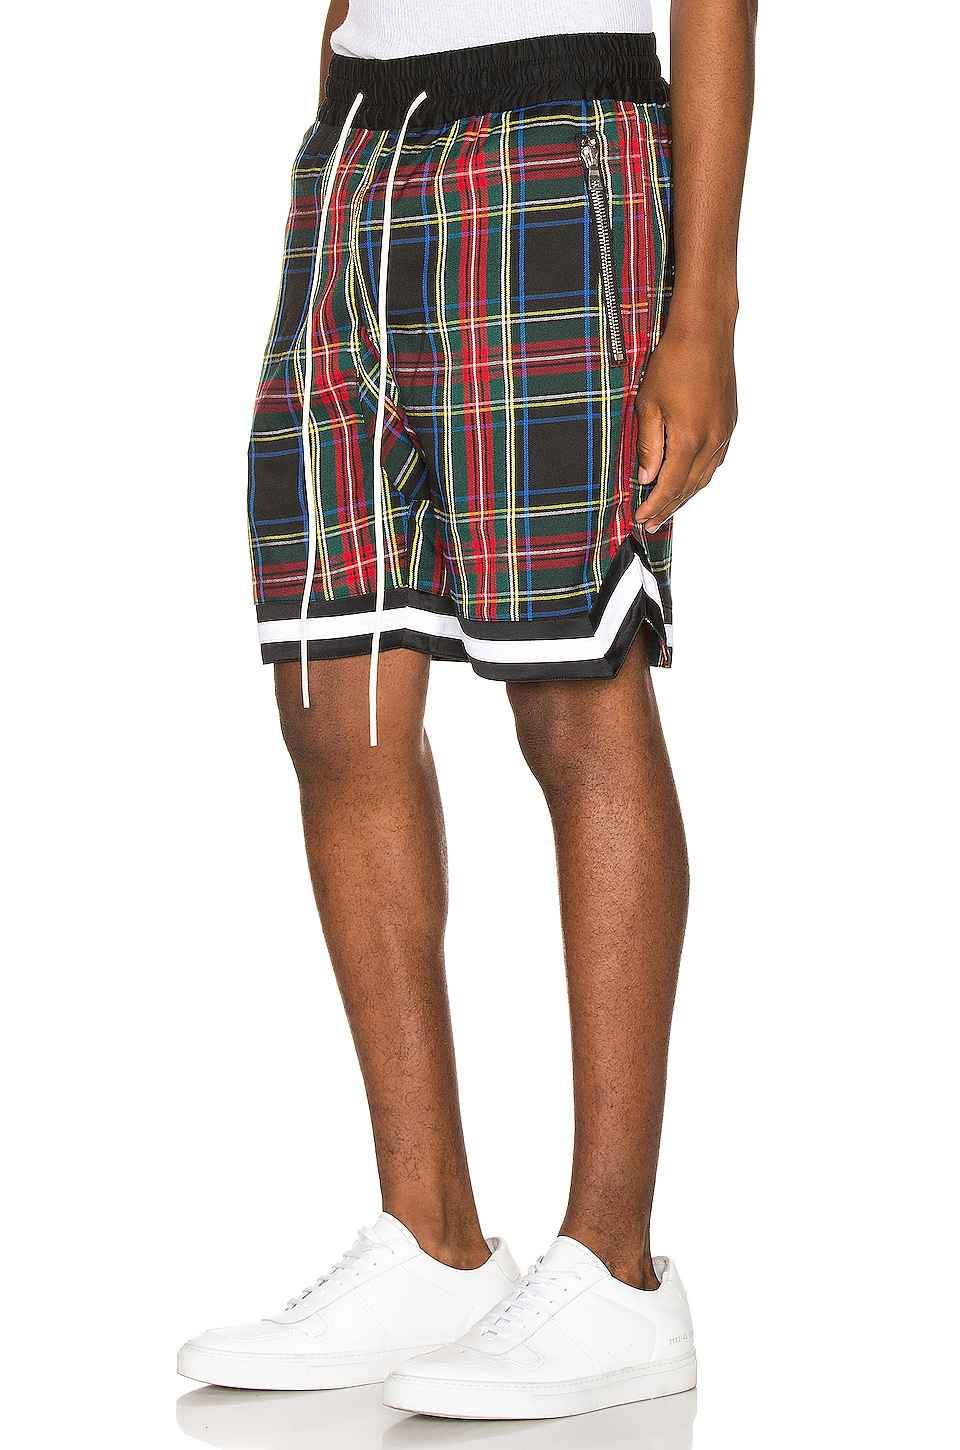 Crysp Denim SHORTS A CUADROS JORDAN